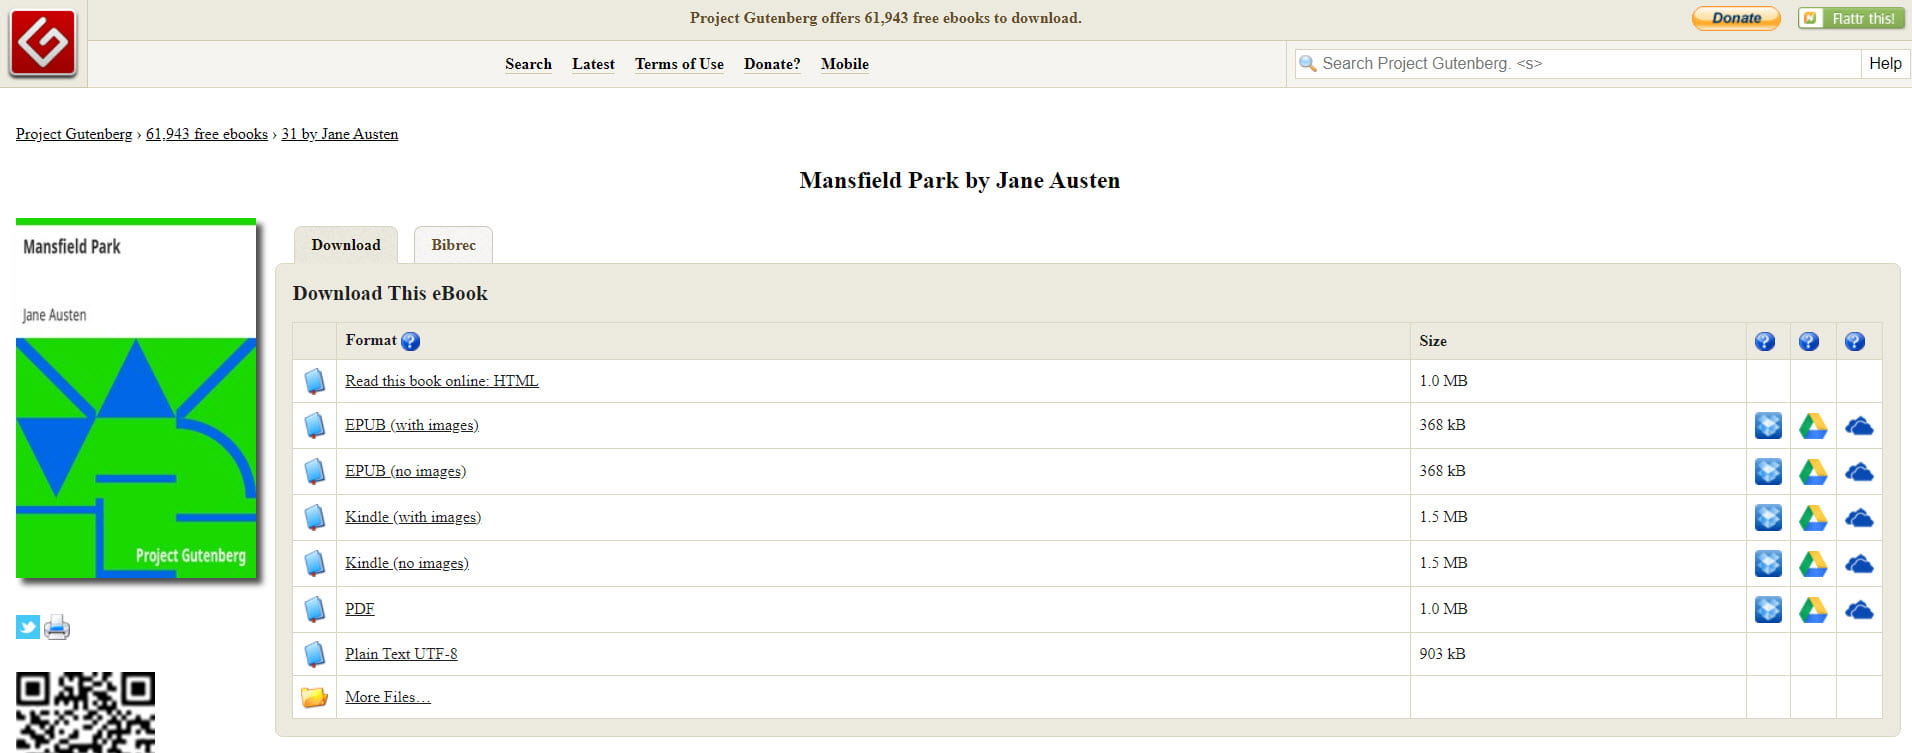 Project Gutenberg record for Mansfield Park by Jane Austen